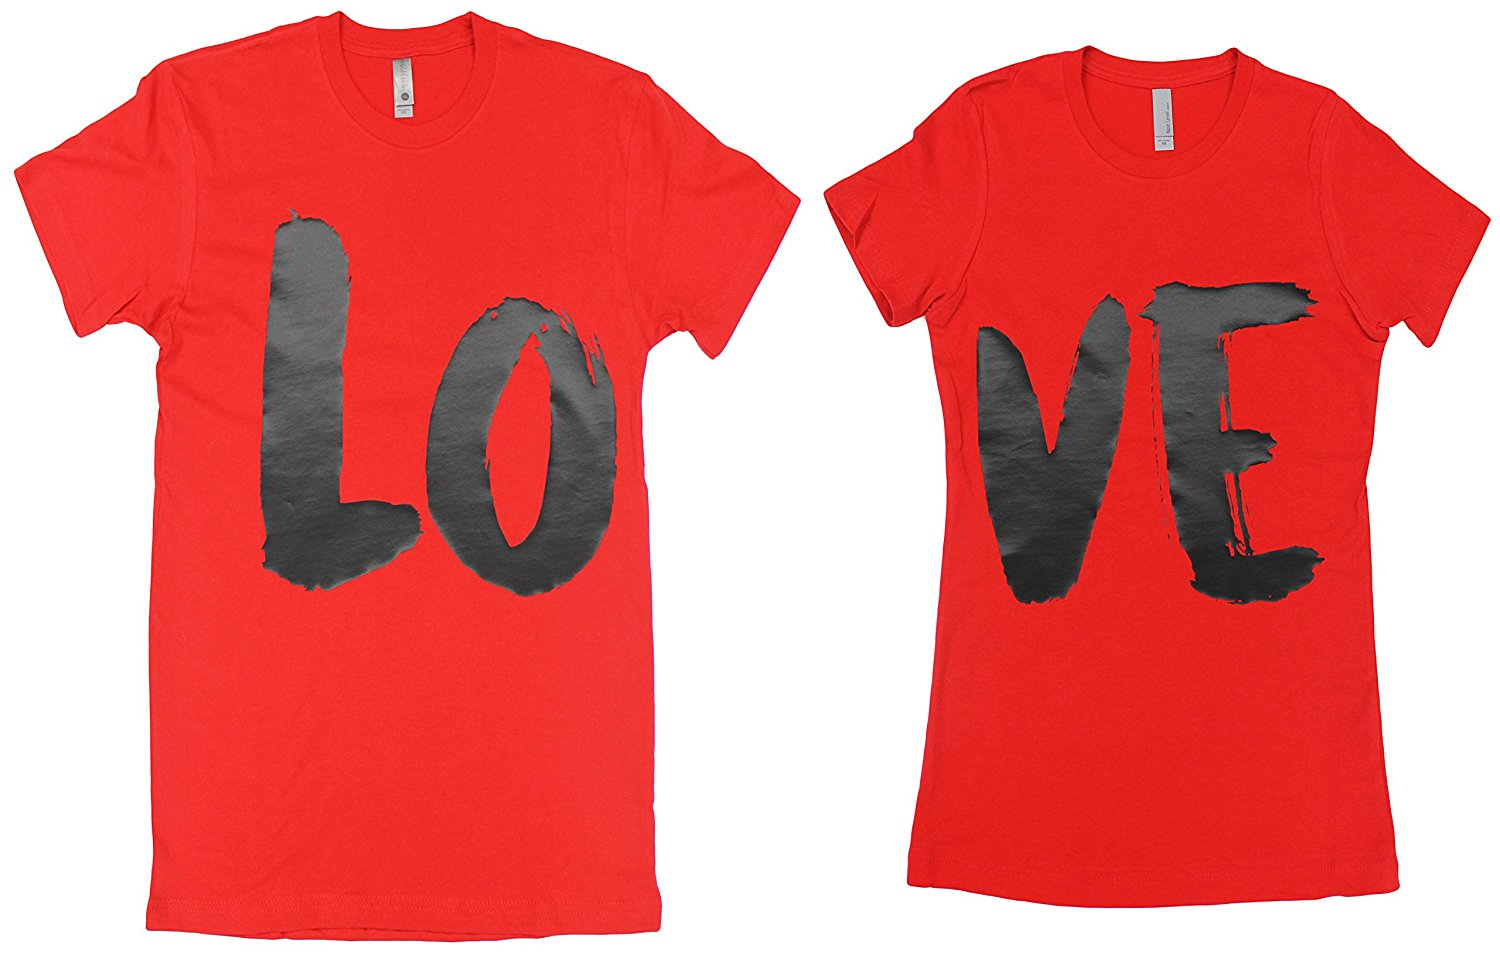 c0c18aca7 Get Quotations · Matching Couple Valentine T-Shirts - Custom His & Hers  Love Tees - 3 Colors